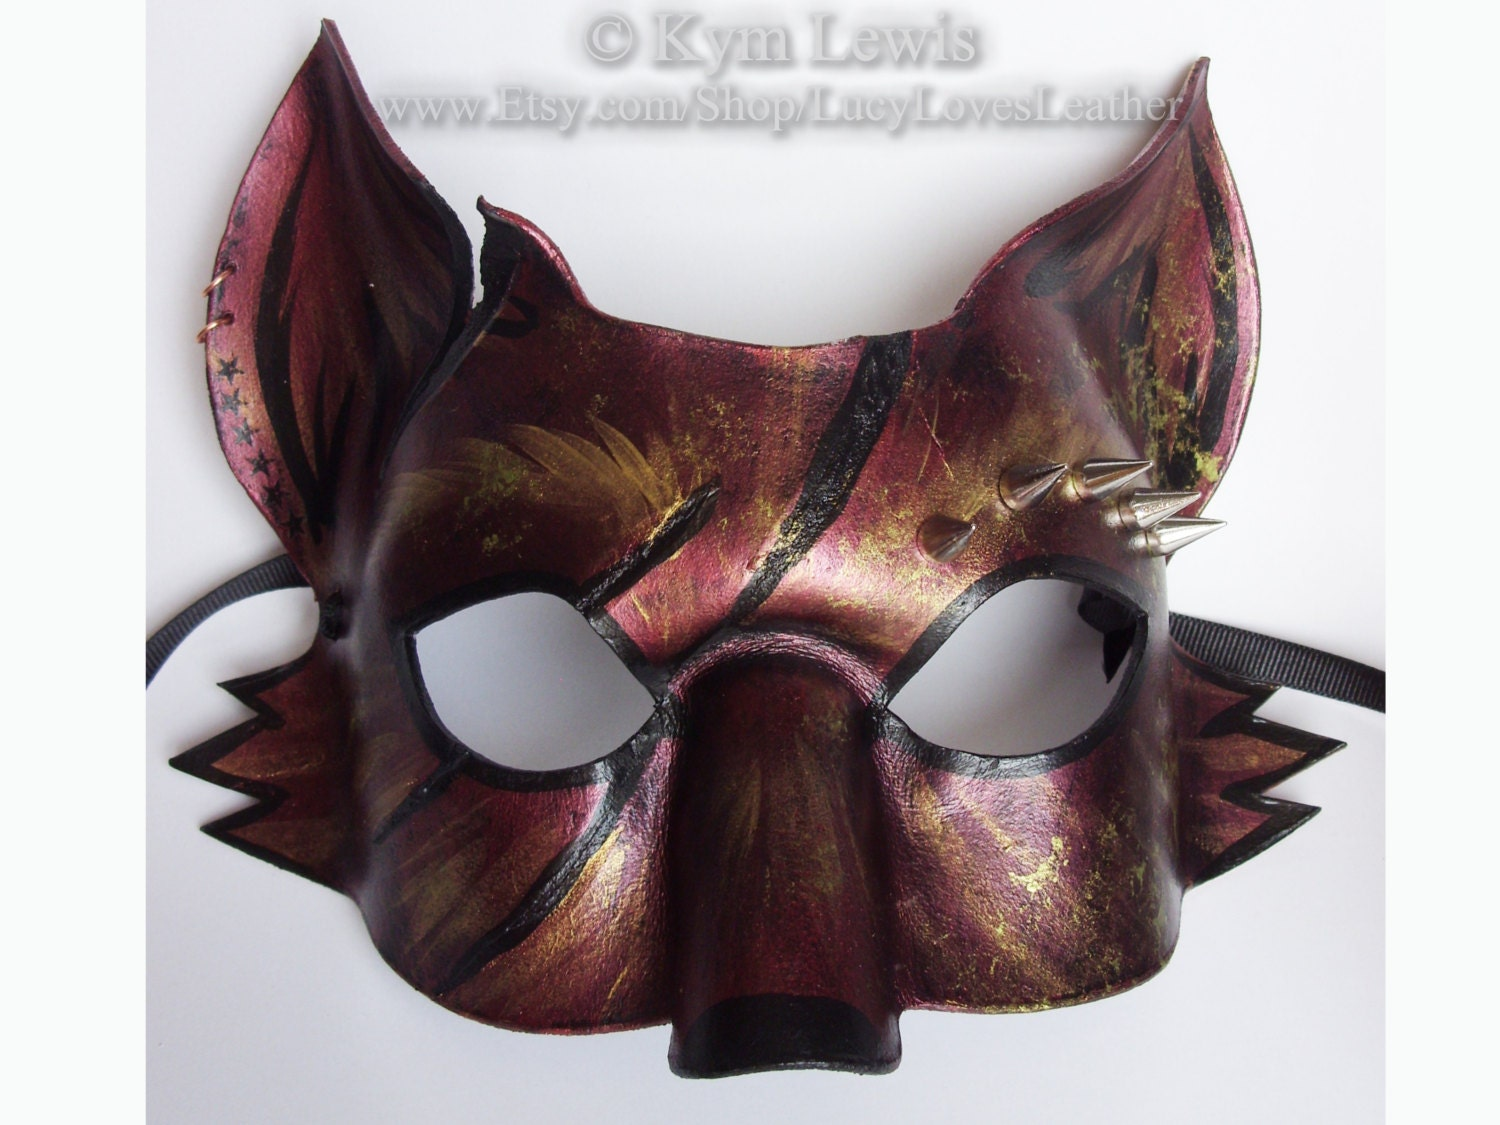 Leather Fox Mask Steampunk Masquerade Spiked Leather